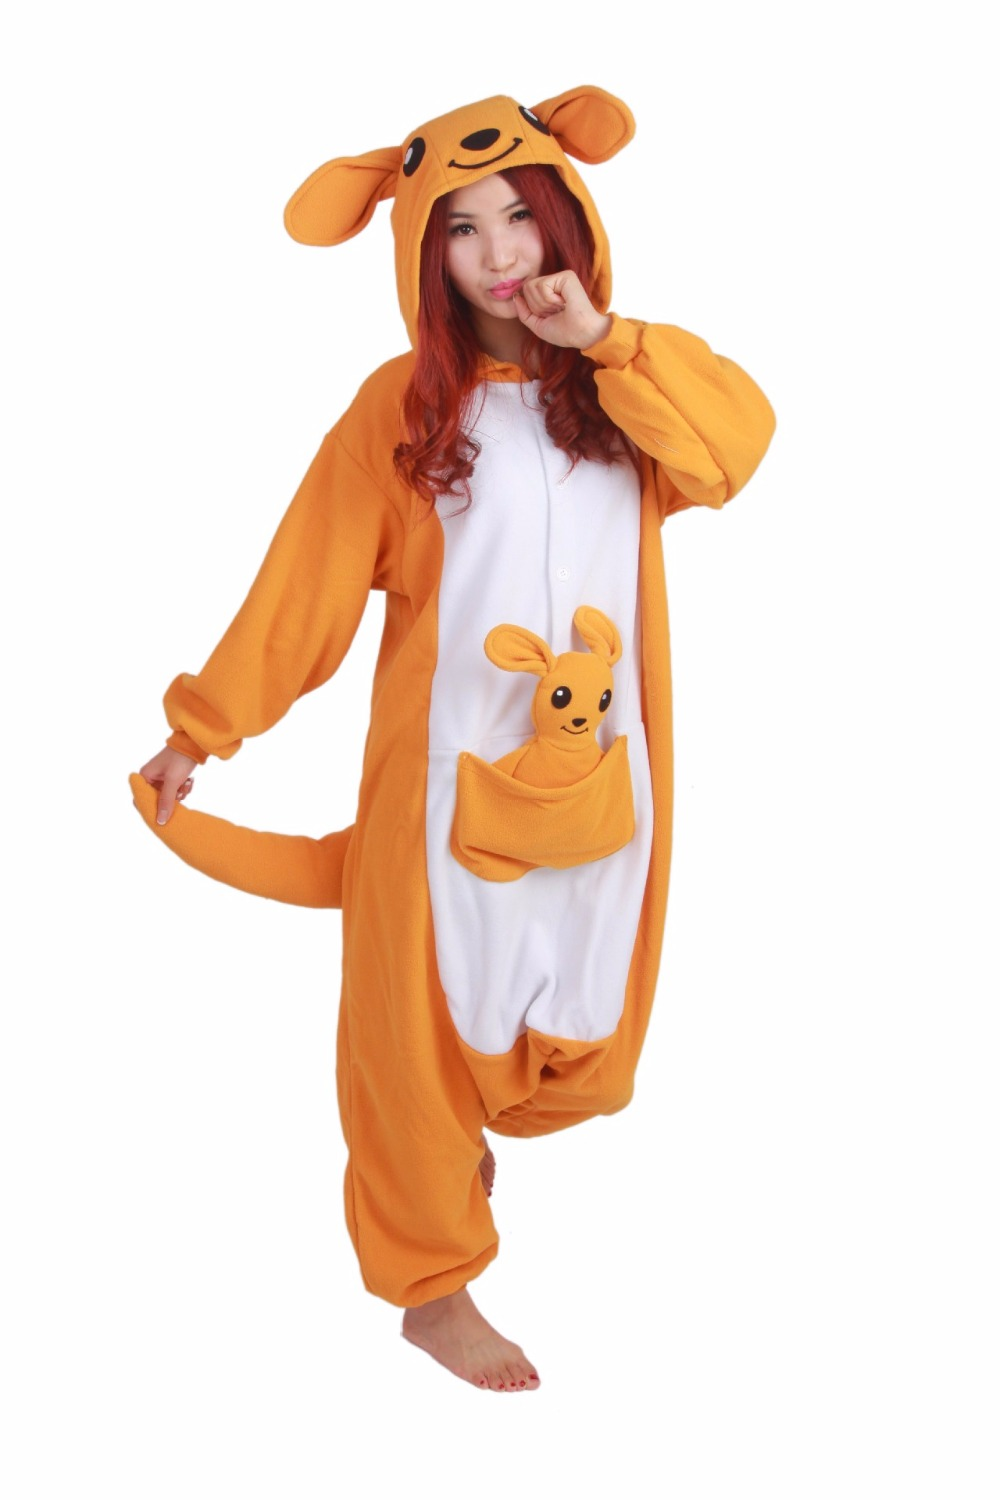 Adult Animal kangaroo Cosplay Onesie Women Men Unisex Winter Halloween Party Costumes with a Doll  Female Male Cute Pajamas